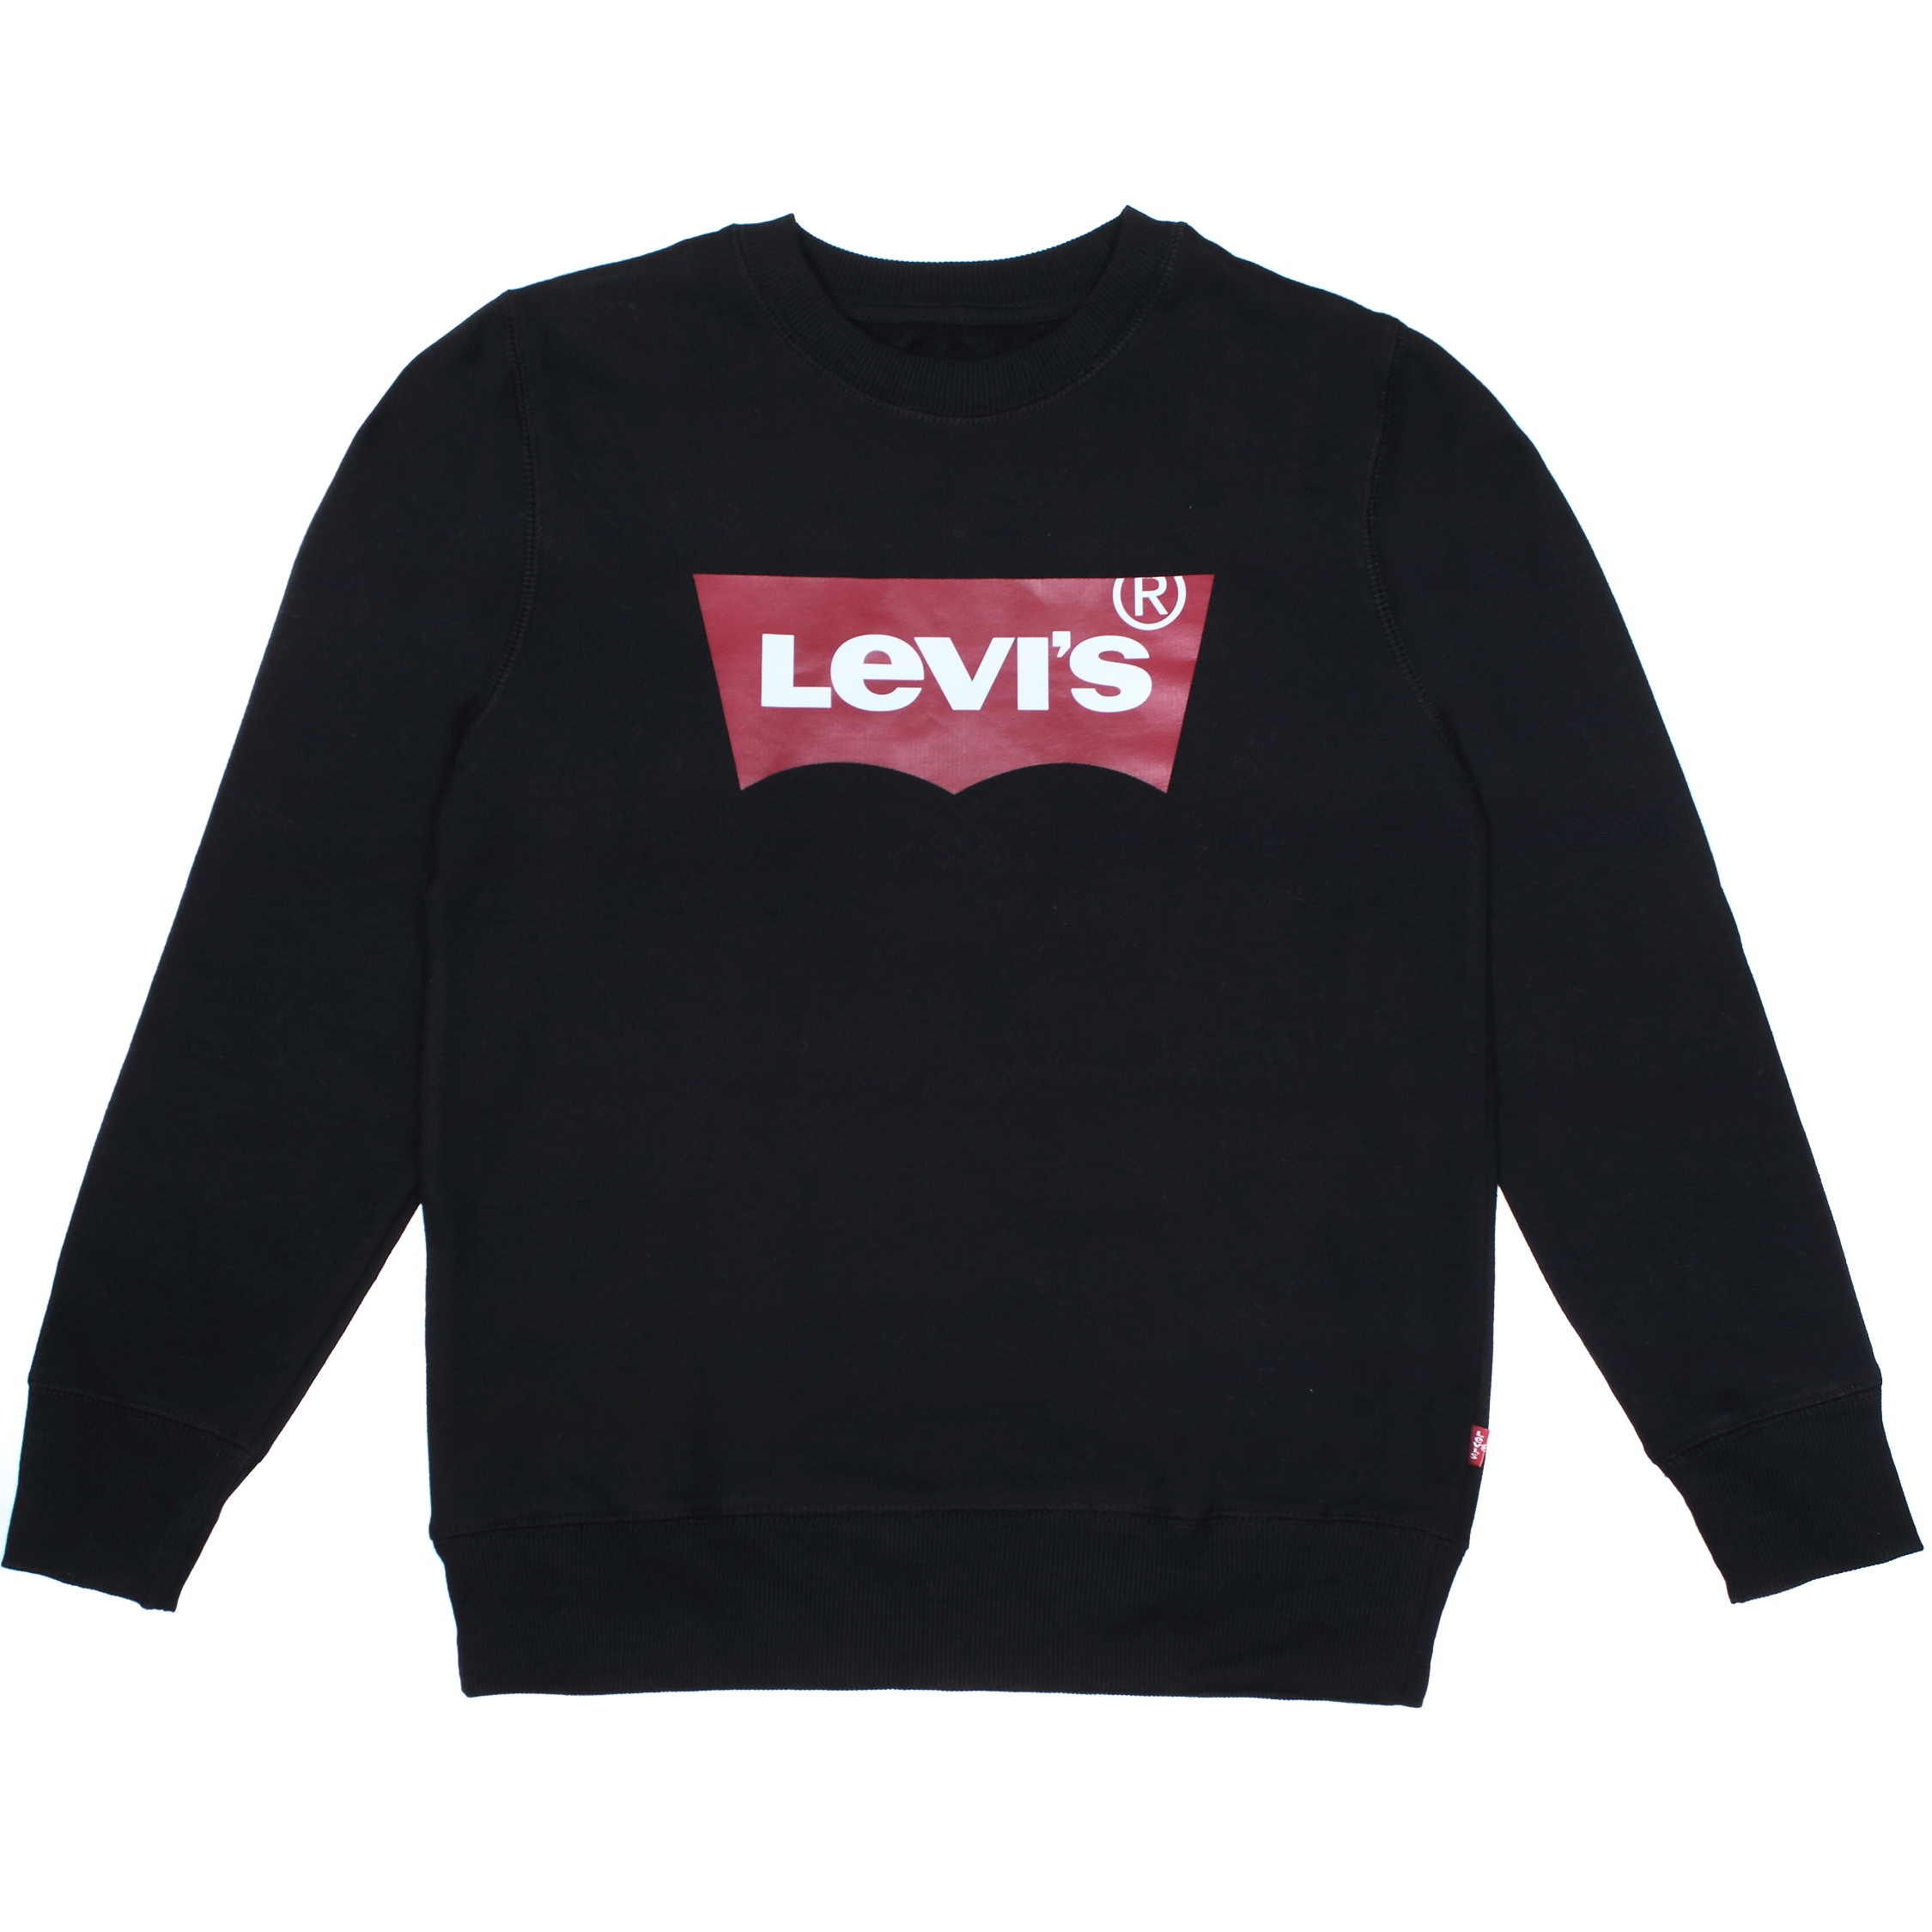 https://www.leadermode.com/184923/levi-s-kids-9079-023-black.jpg